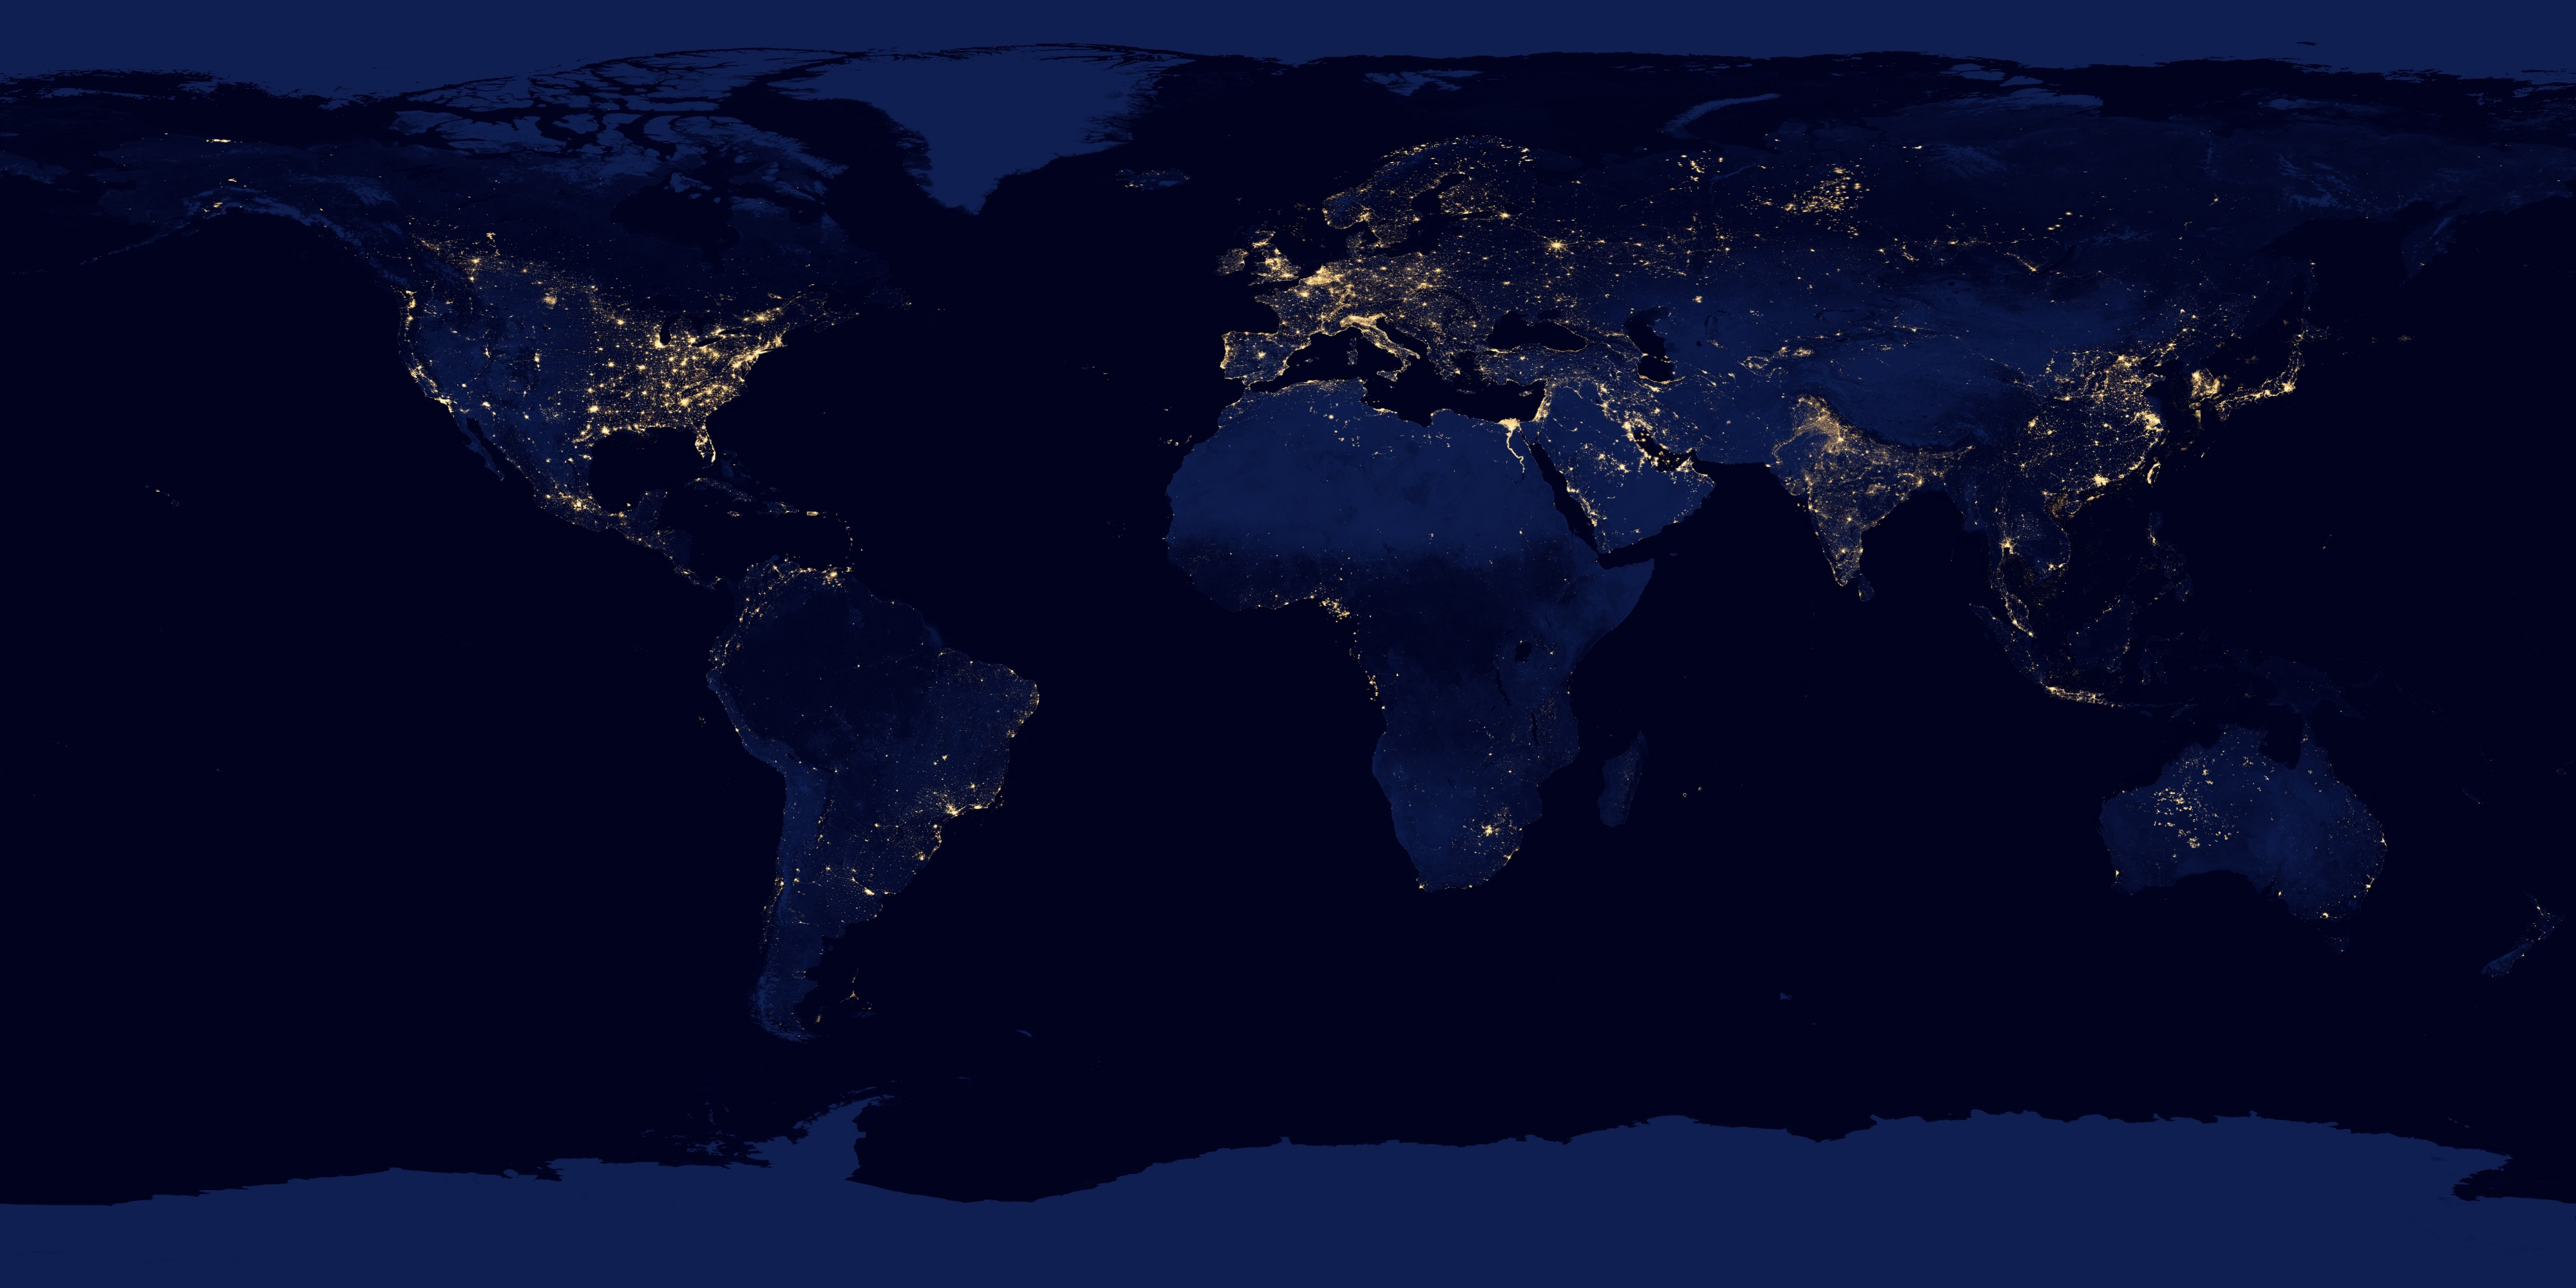 The earth at night